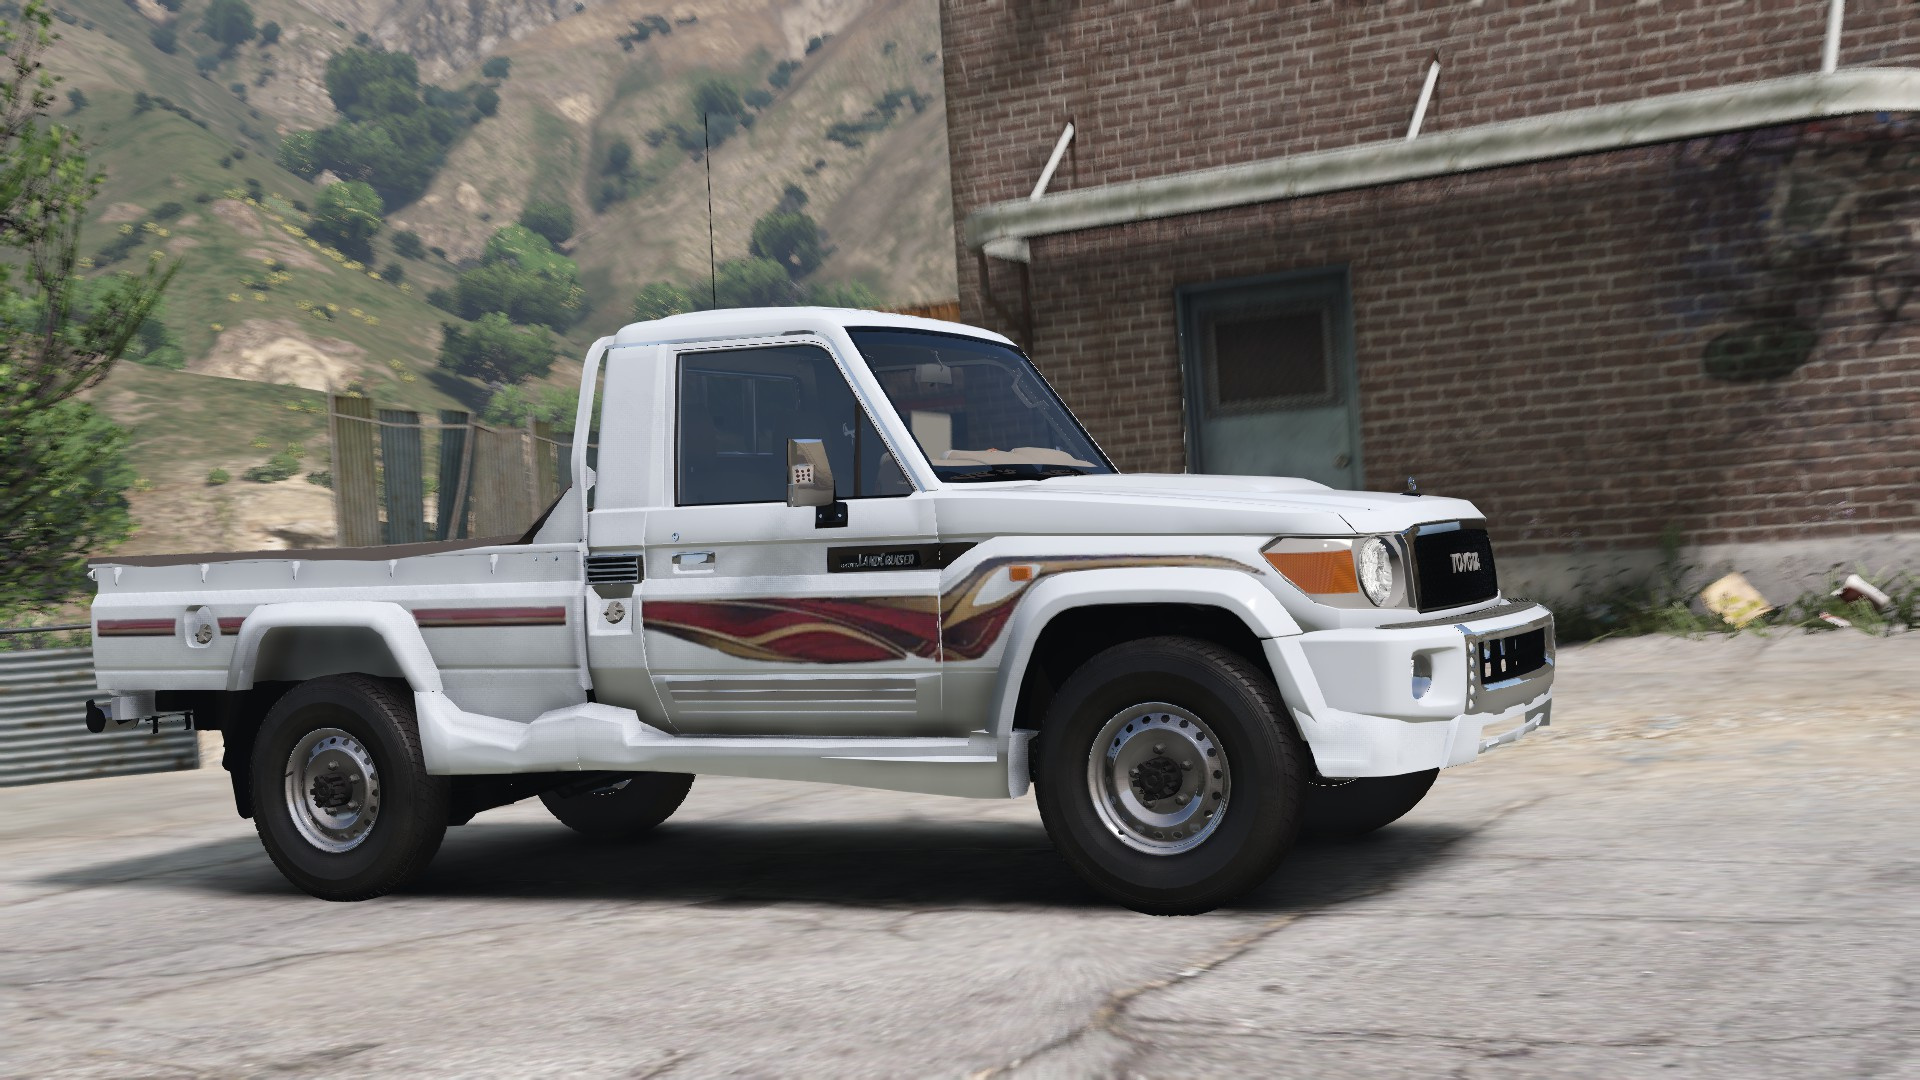 2017 Toyota Land Cruiser v6 [ Add-on / Tuning / Livery / Replace